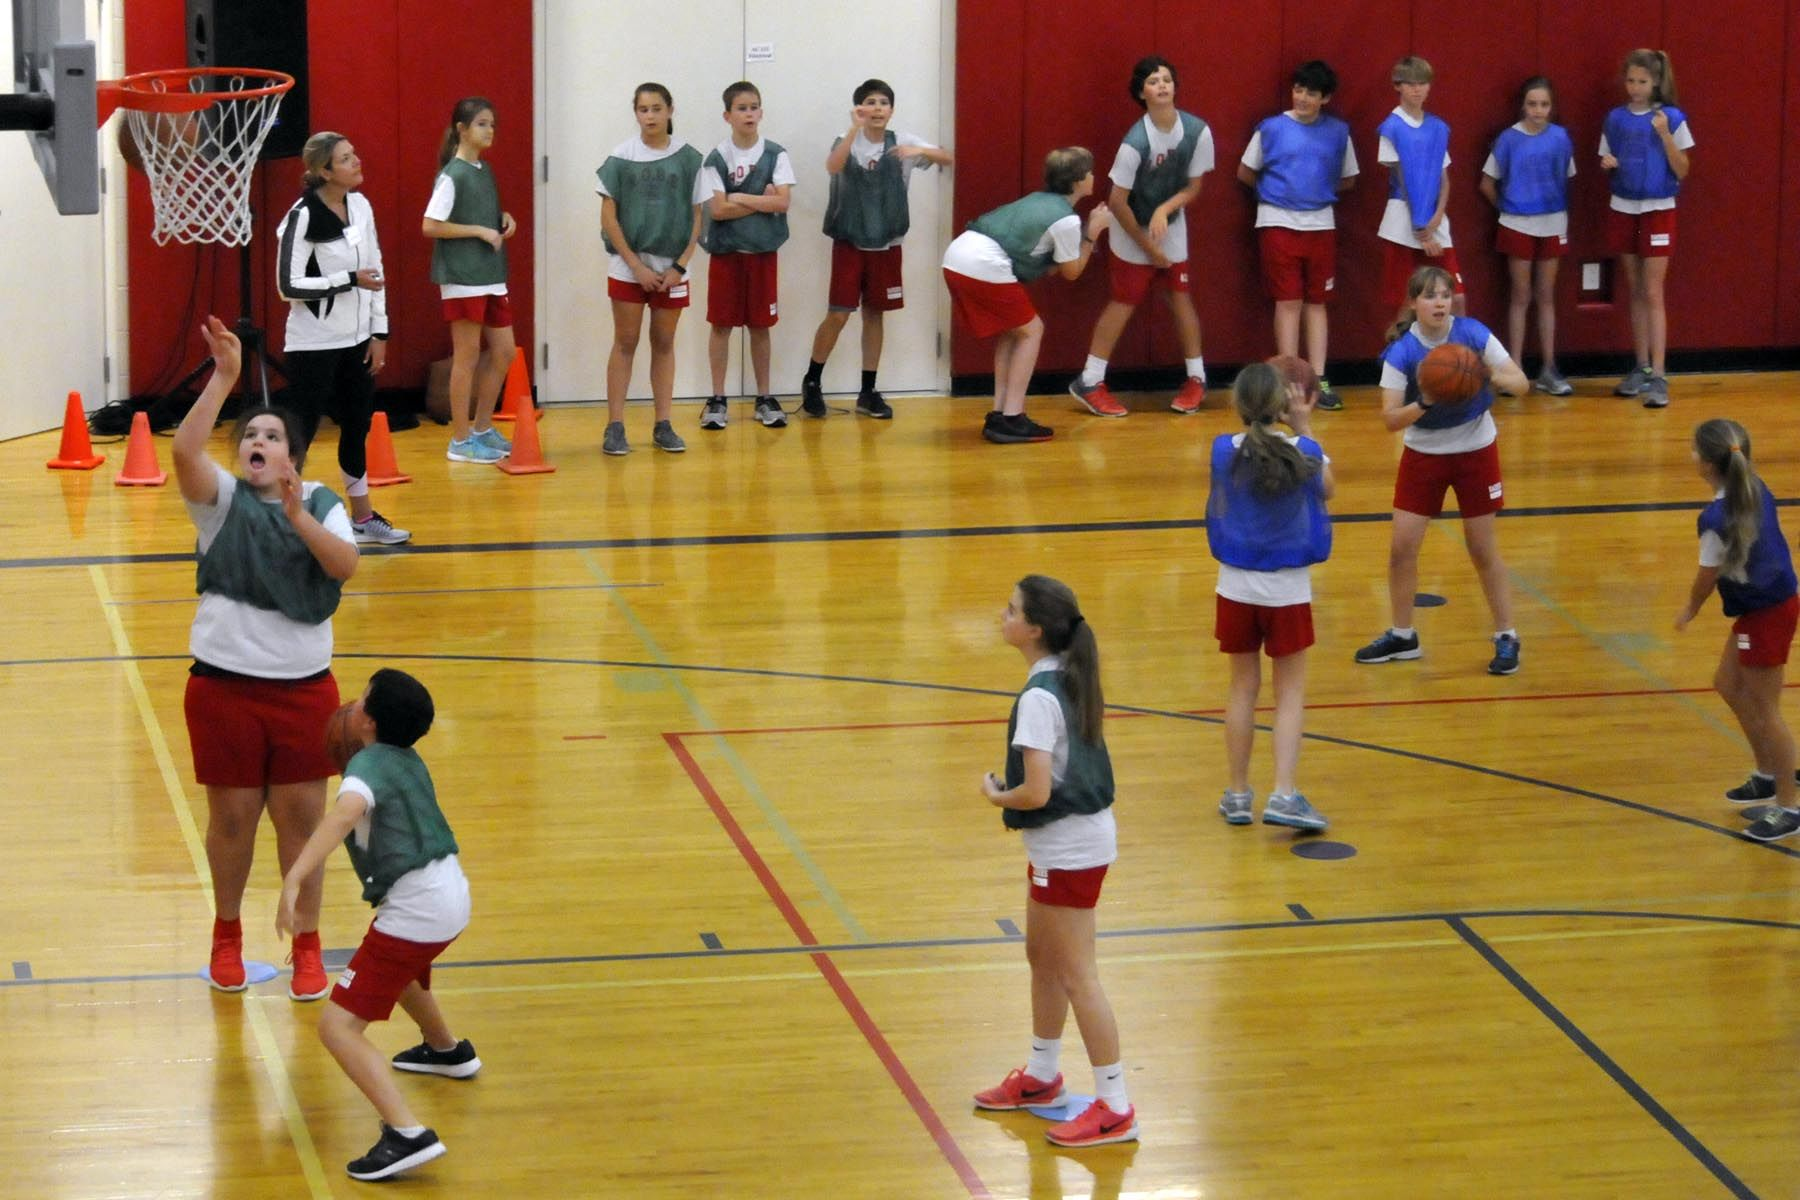 Sixth graders shoot hoops to earn money for overseas water wells.